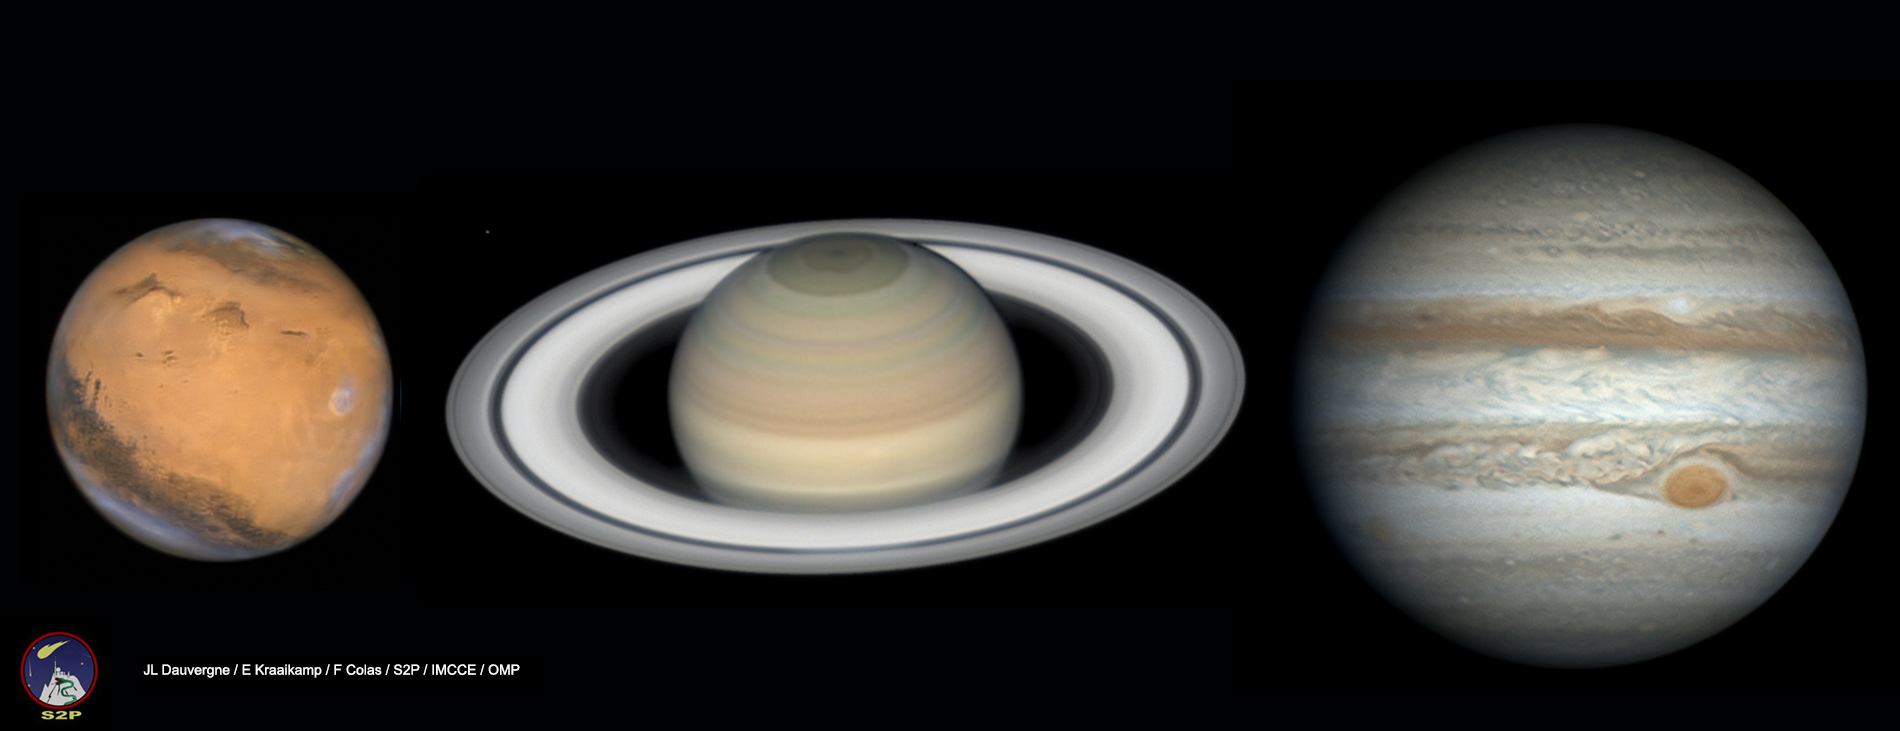 2016 June 2 - Three Planets from Pic du Midi